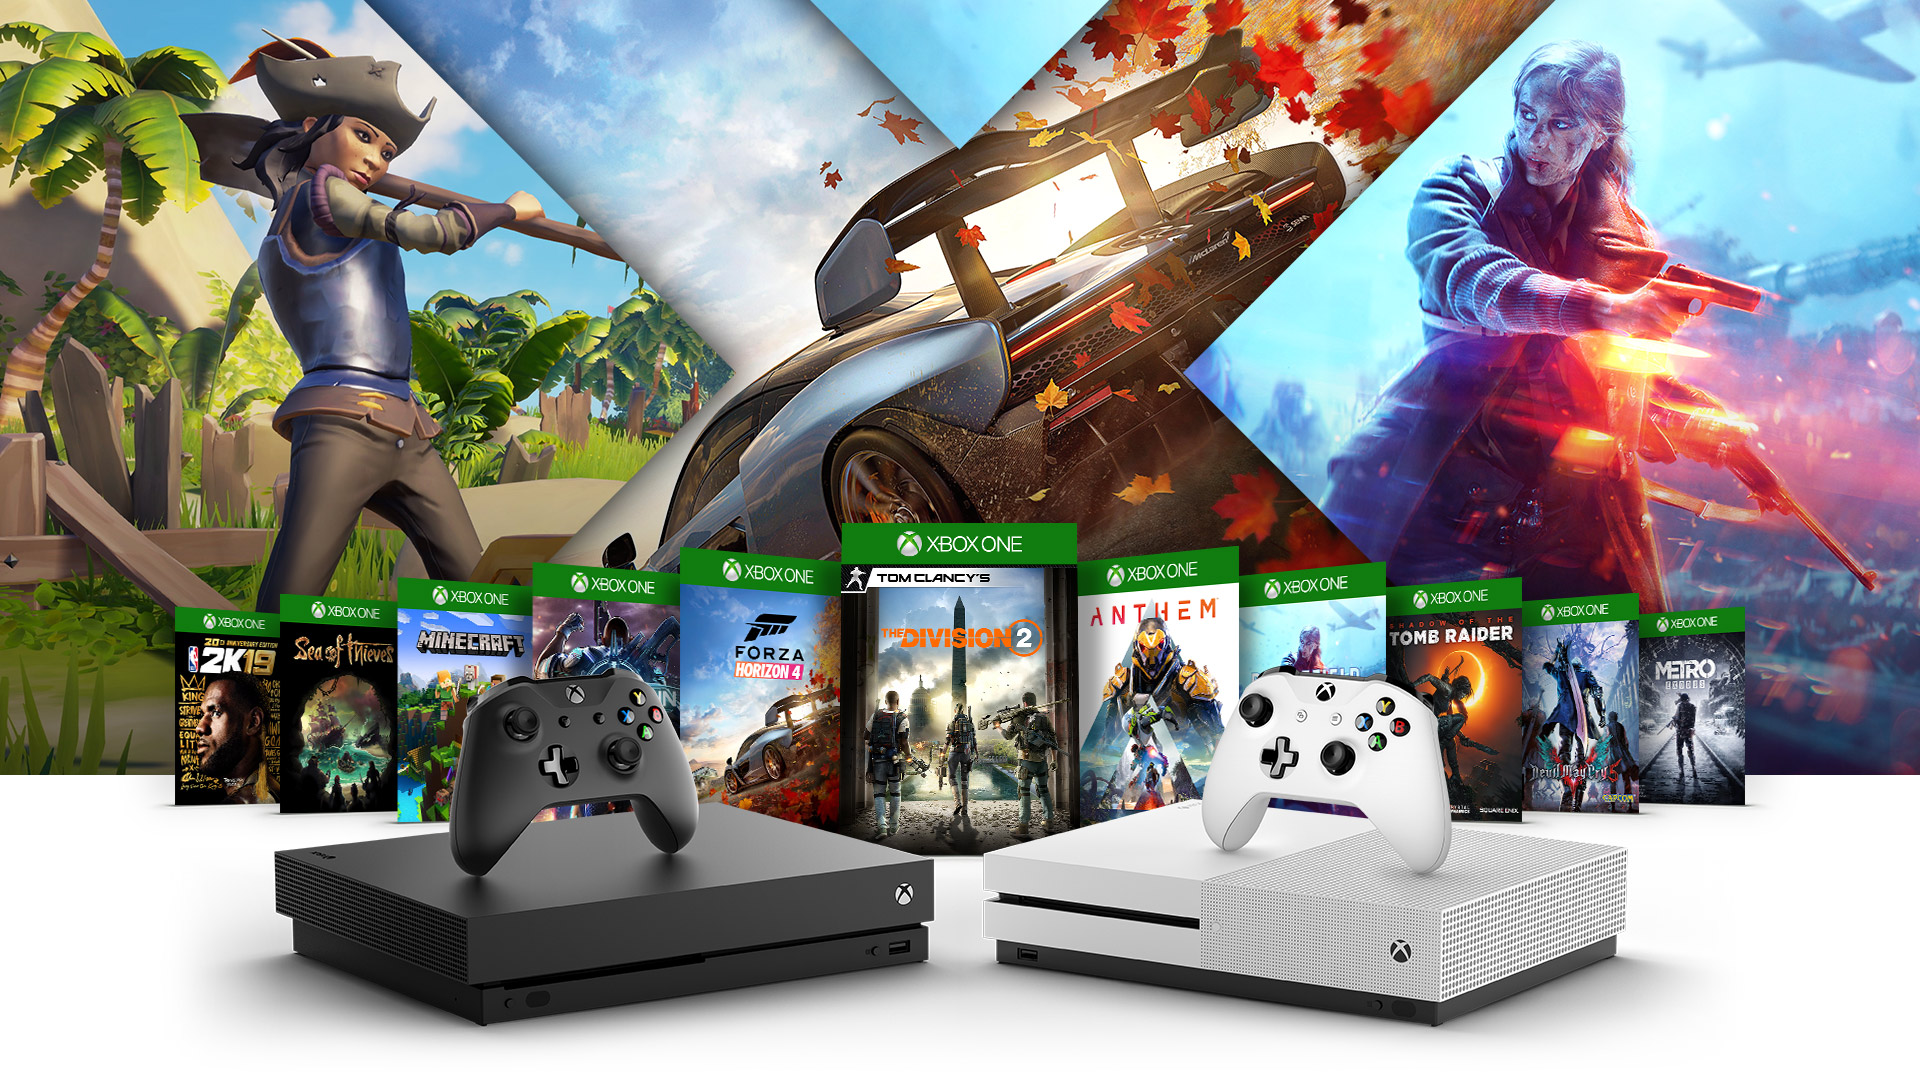 Crackdown 3、Sea of​​ Thieves、Minecraft、Madden 19、2K19、Forza Horizo​​n 4、Fallout 76、Battlefield Five、Shadow of the Tomb Raider、Player's Unknown Battlegrounds、State of Decay 2に囲まれた Xbox One X と Xbox One S Xbox One S All Digital Edition の側面図